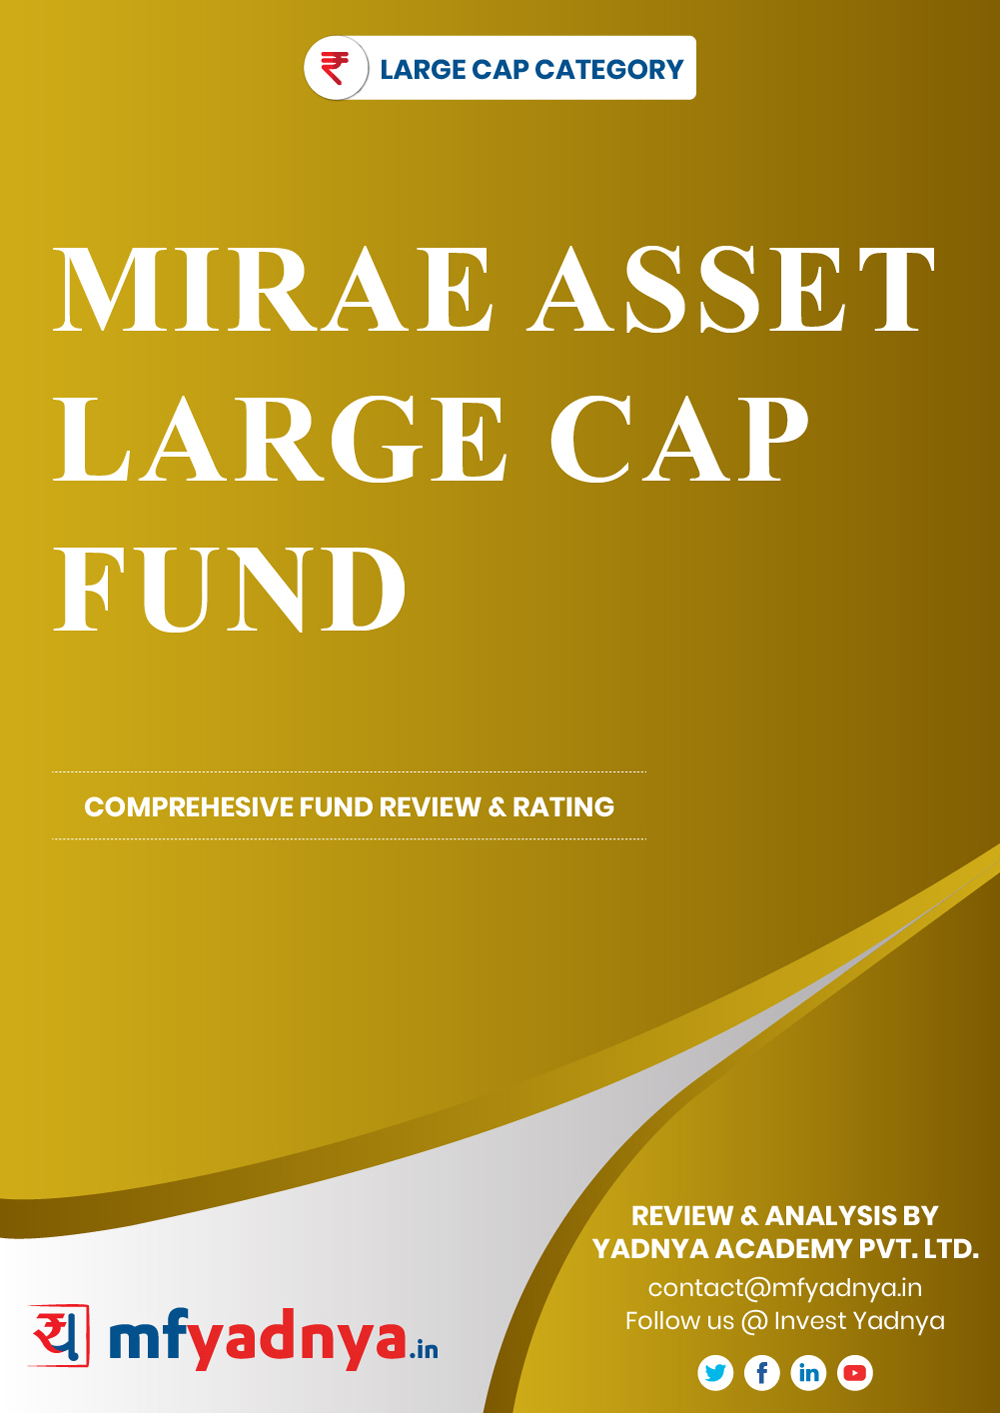 Large Cap Category Review - Mirae Asset Large Cap Fund. Most Comprehensive and detailed MF review based on Yadnya's proprietary methodology of Green, Yellow & Red Star. Detailed Analysis & Review based on May 31st, 2020 data.